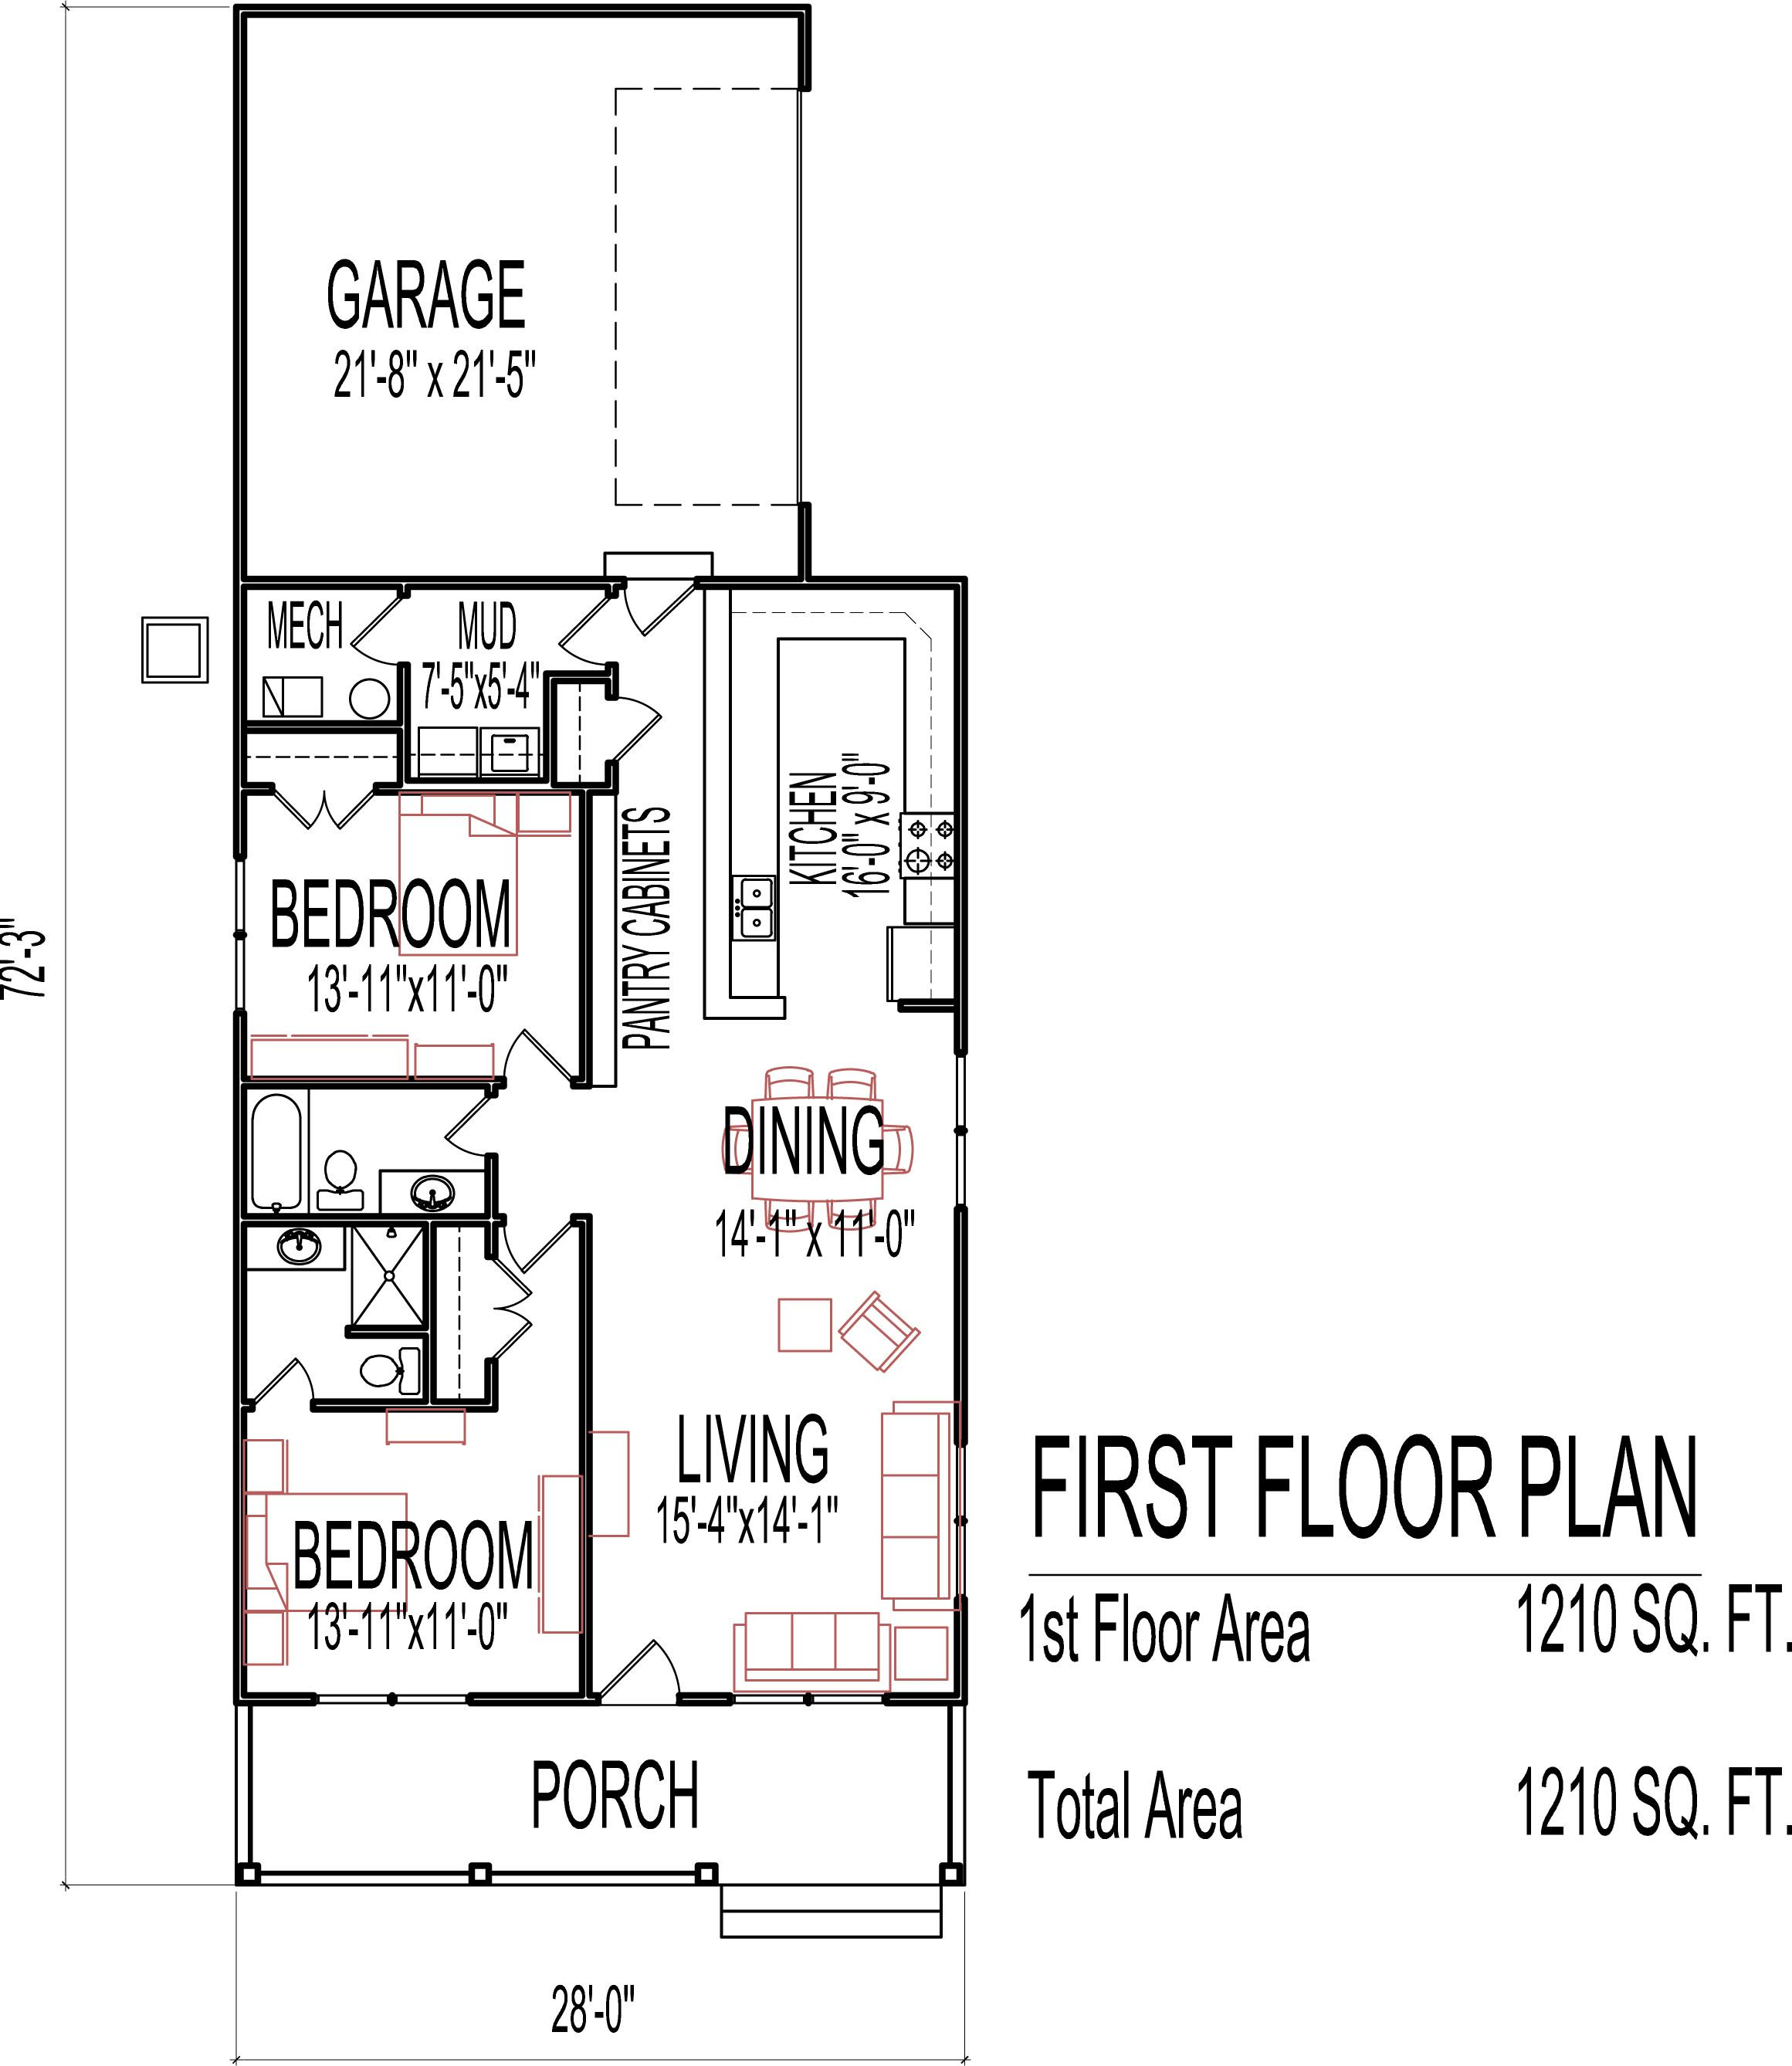 small low cost economical 2 bedroom 2 bath 1200 sq ft On 2 bedroom 2 bath single story house plans